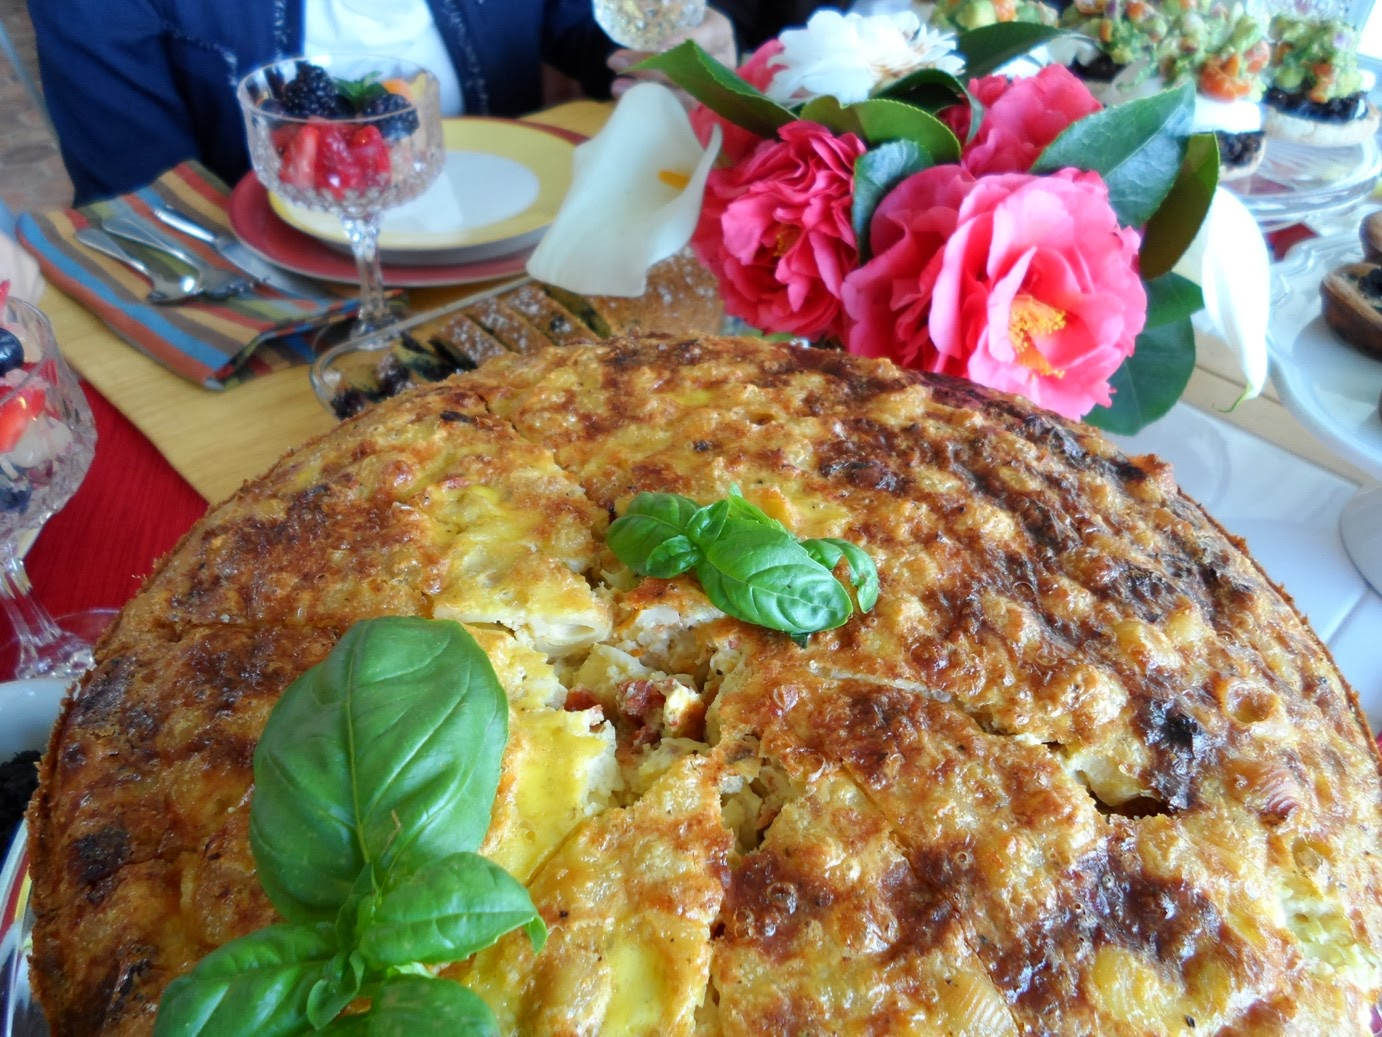 Savorychicks: Zucchini and Sun-Dried Tomato Frittata